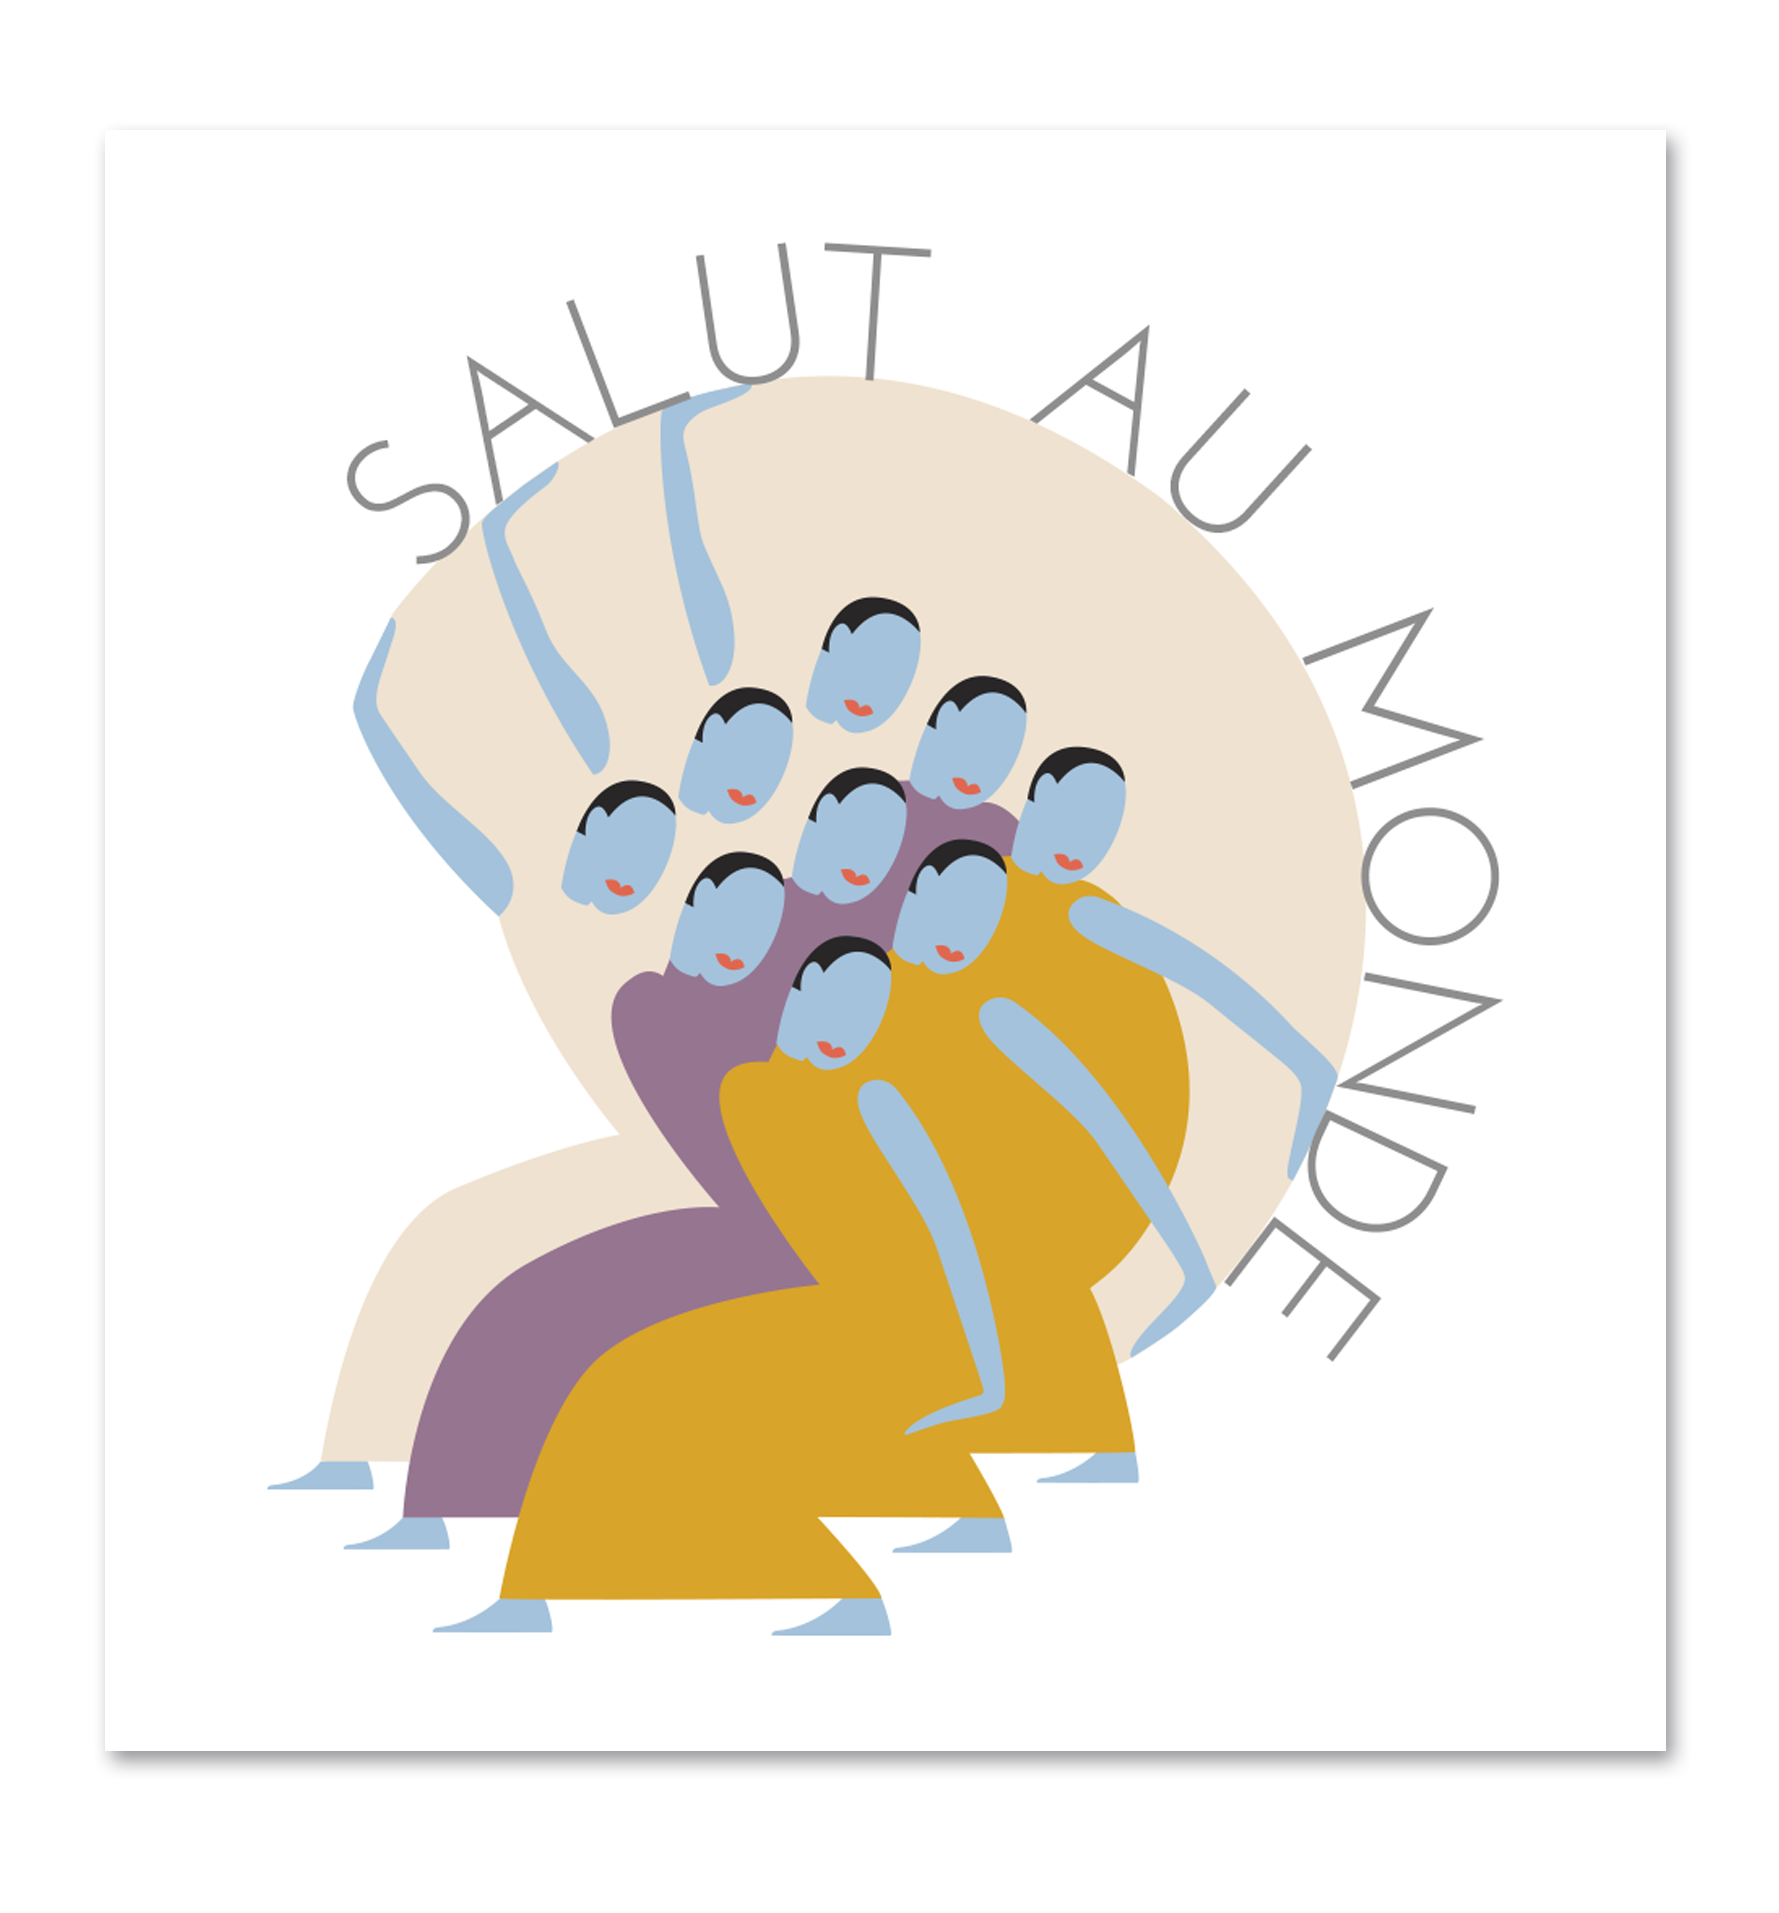 SALUT-homepage.png